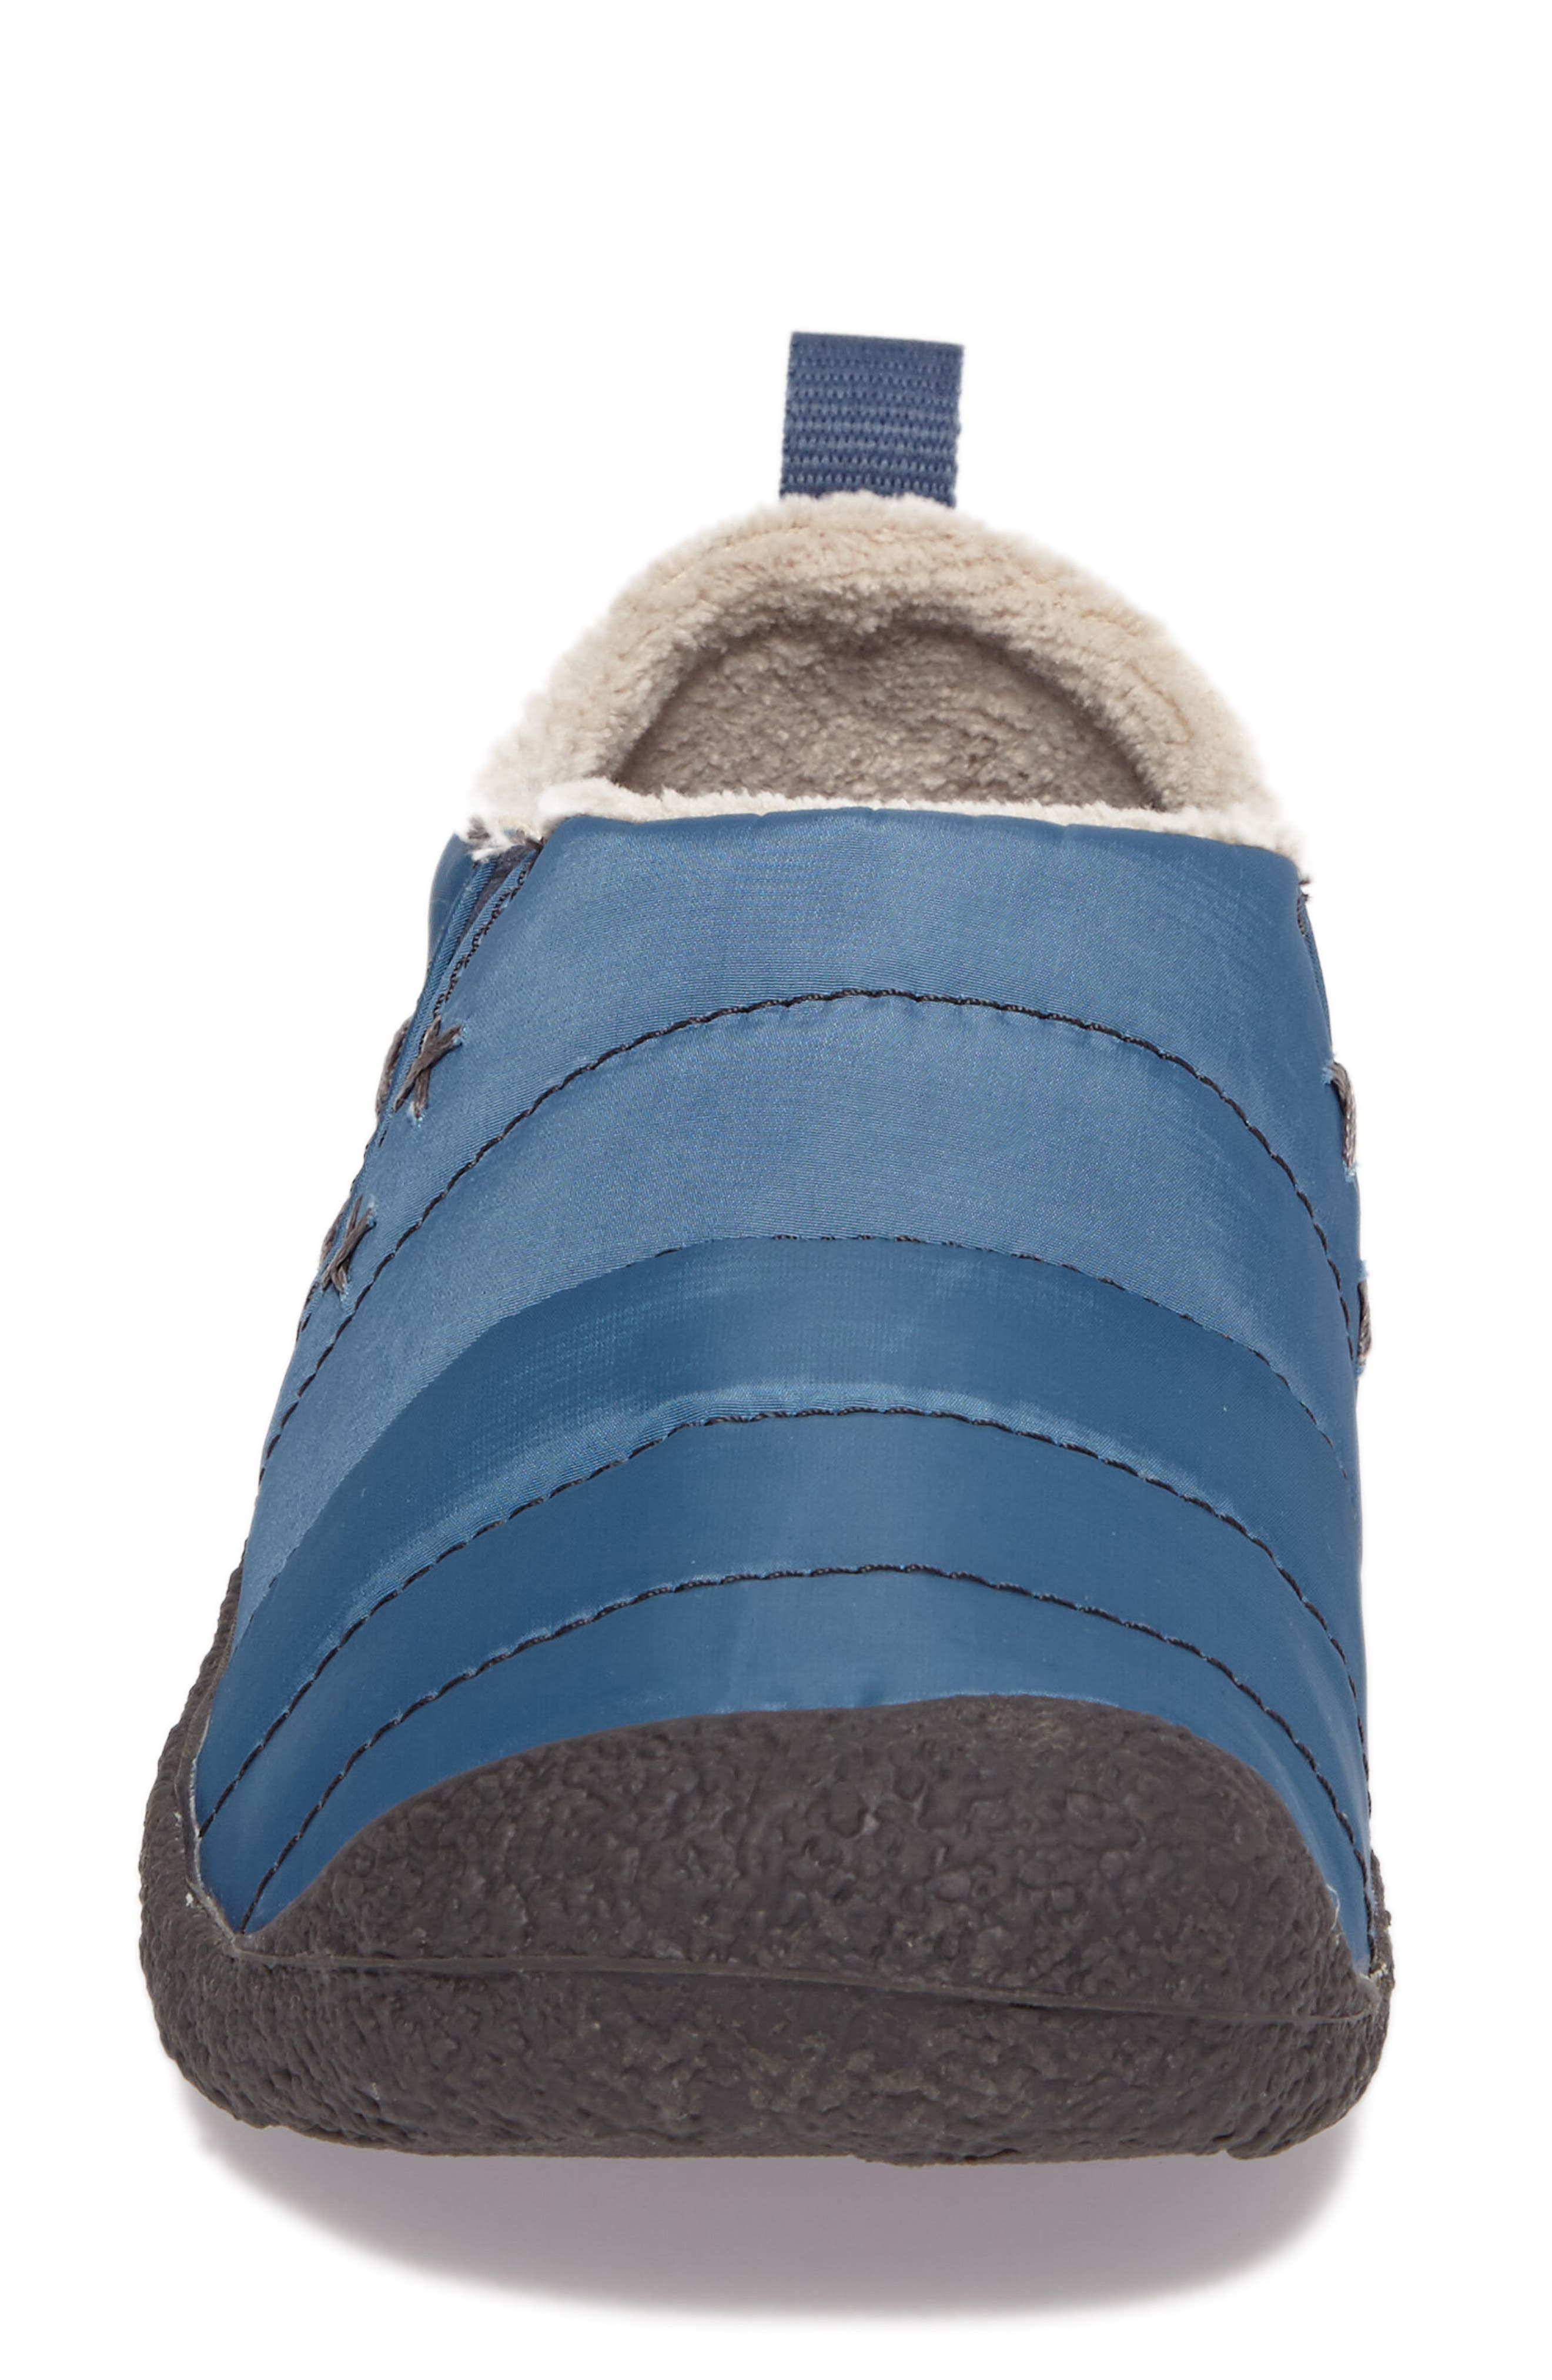 Howser II Water-Resistant Round Toe Clog,                             Alternate thumbnail 4, color,                             Captains Blue Nylon